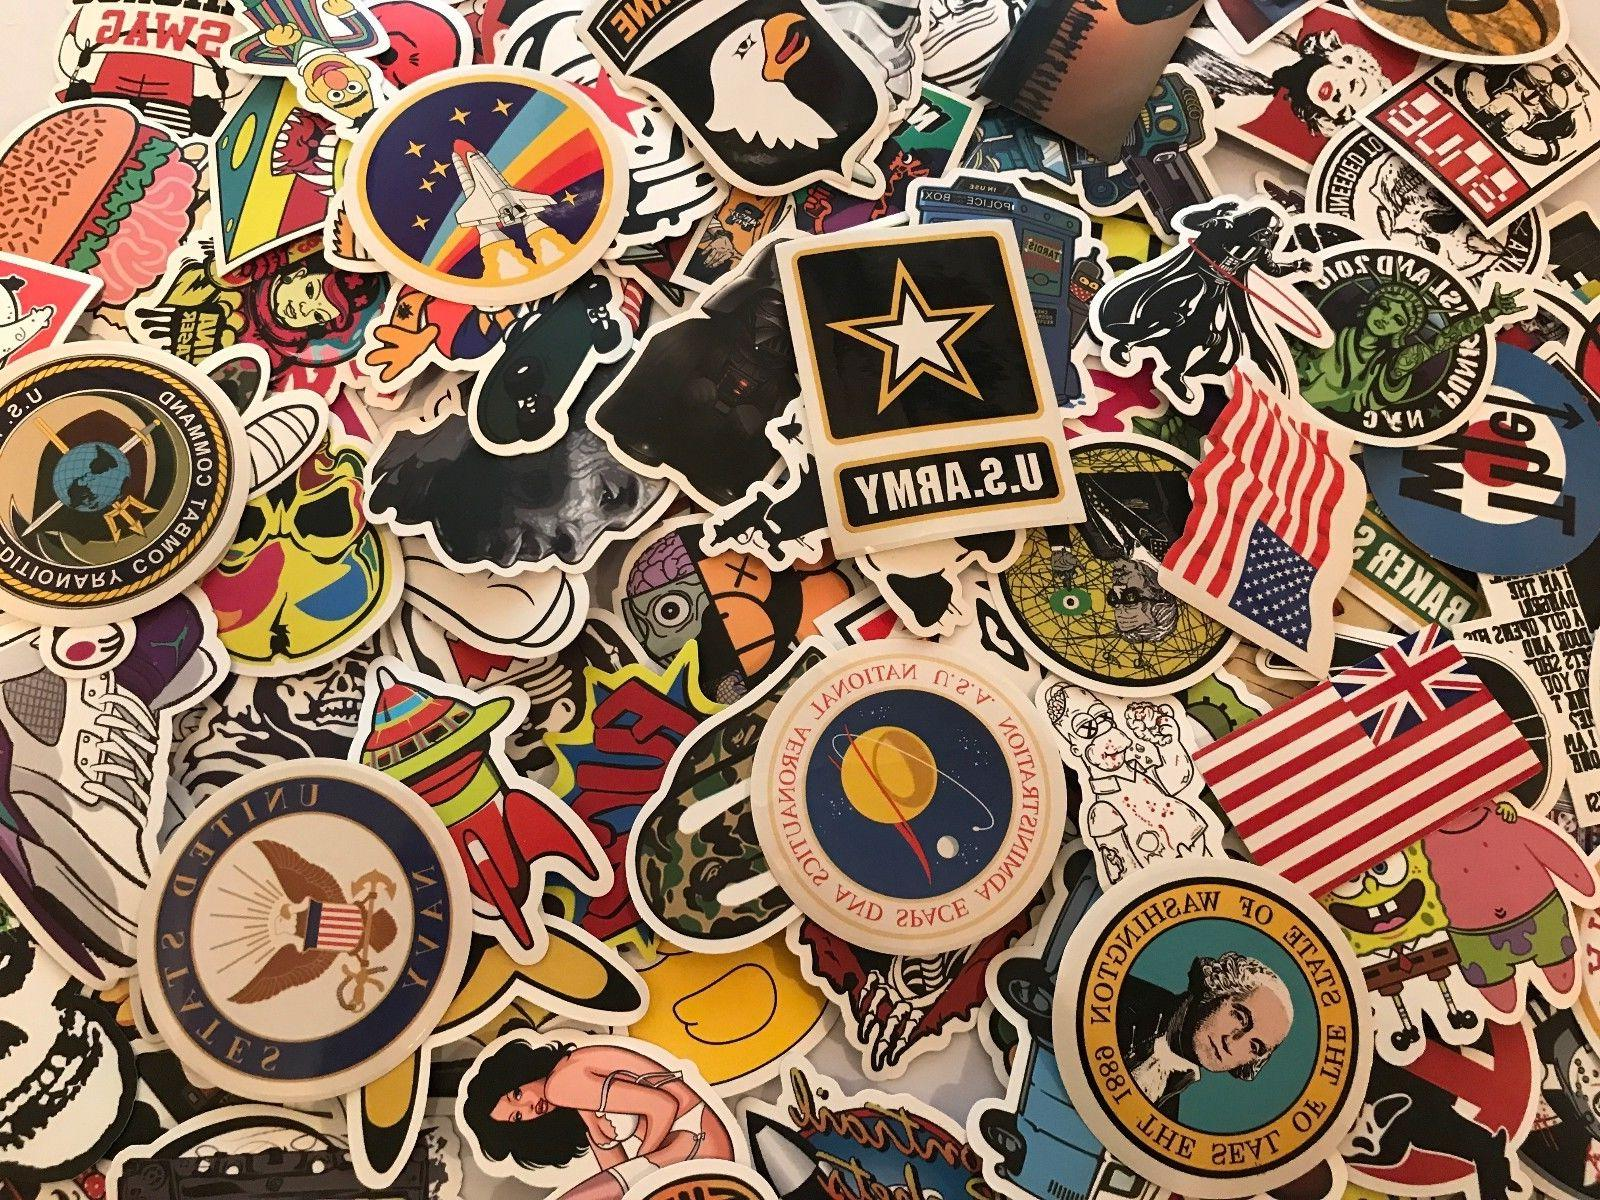 200 Skateboard Stickers US ARMY Vinyl Laptop Luggage Decals